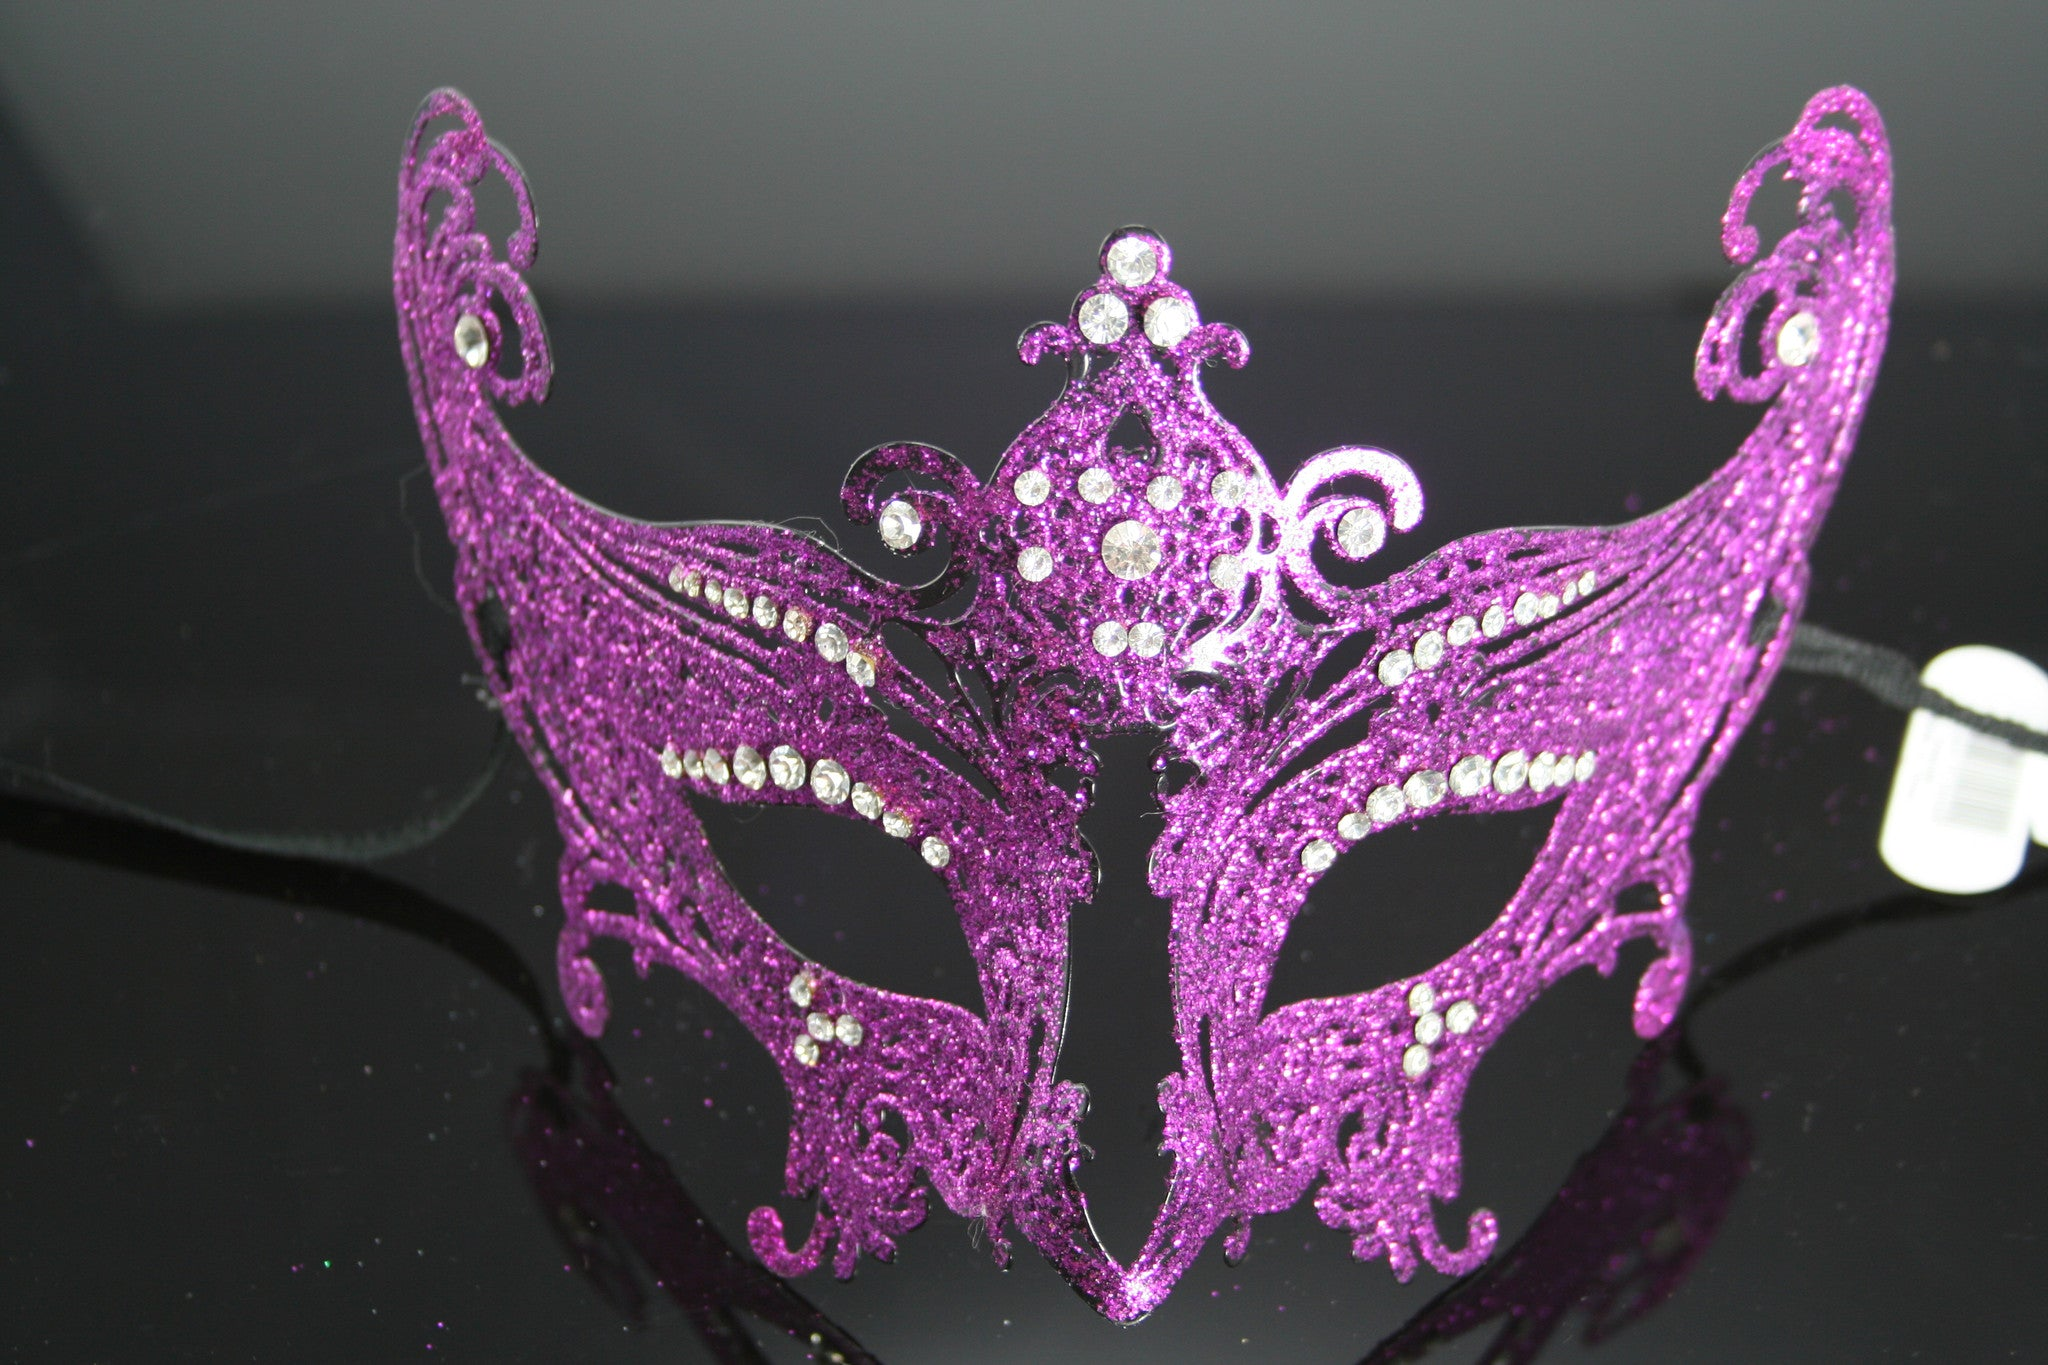 MK66 - Purple Metal Mask with Diamantes - CLEARANCE 50% OFF LISTED PRICE